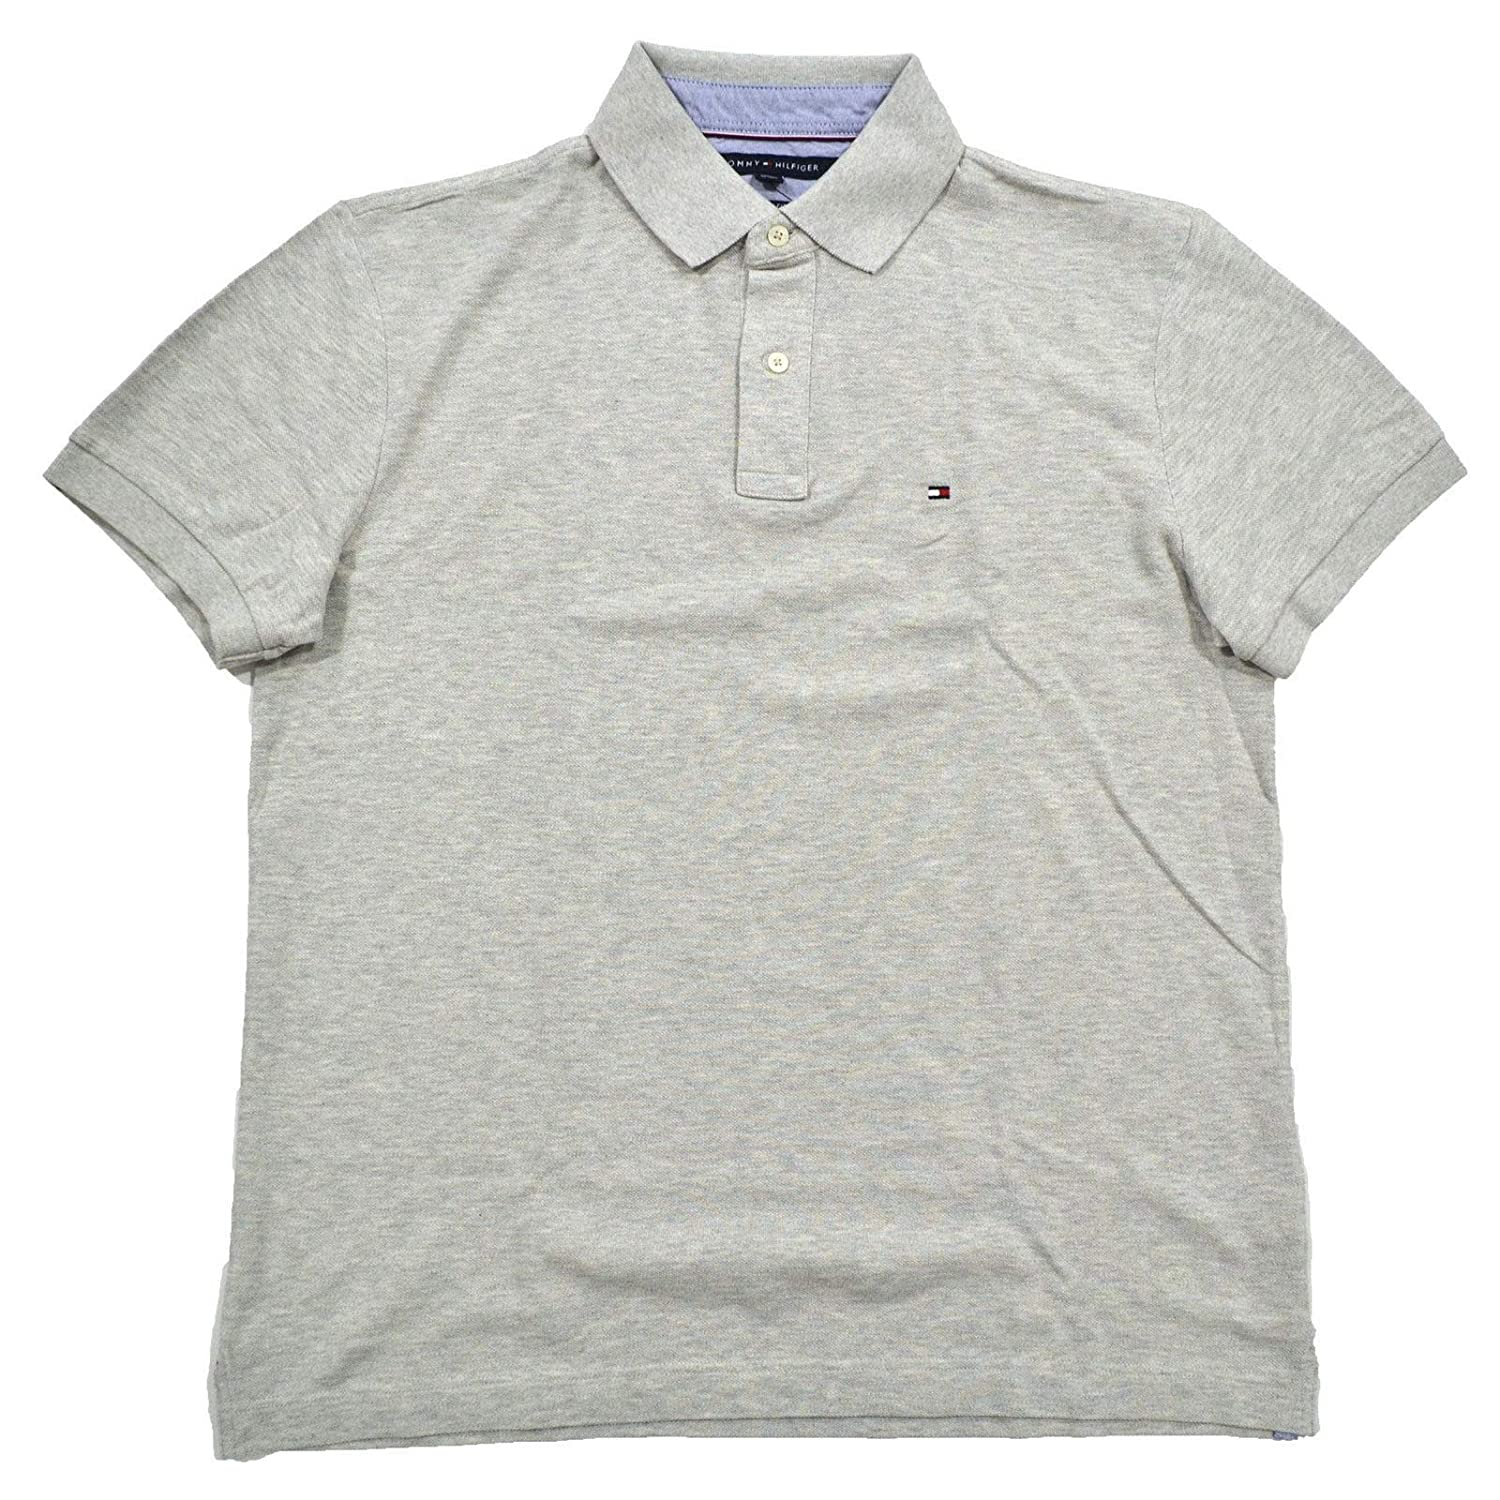 ebc95024b Tommy Hilfiger Mens Custom Fit Solid Color Polo Shirt: Tommy Hilfiger:  Amazon.ca: Clothing & Accessories